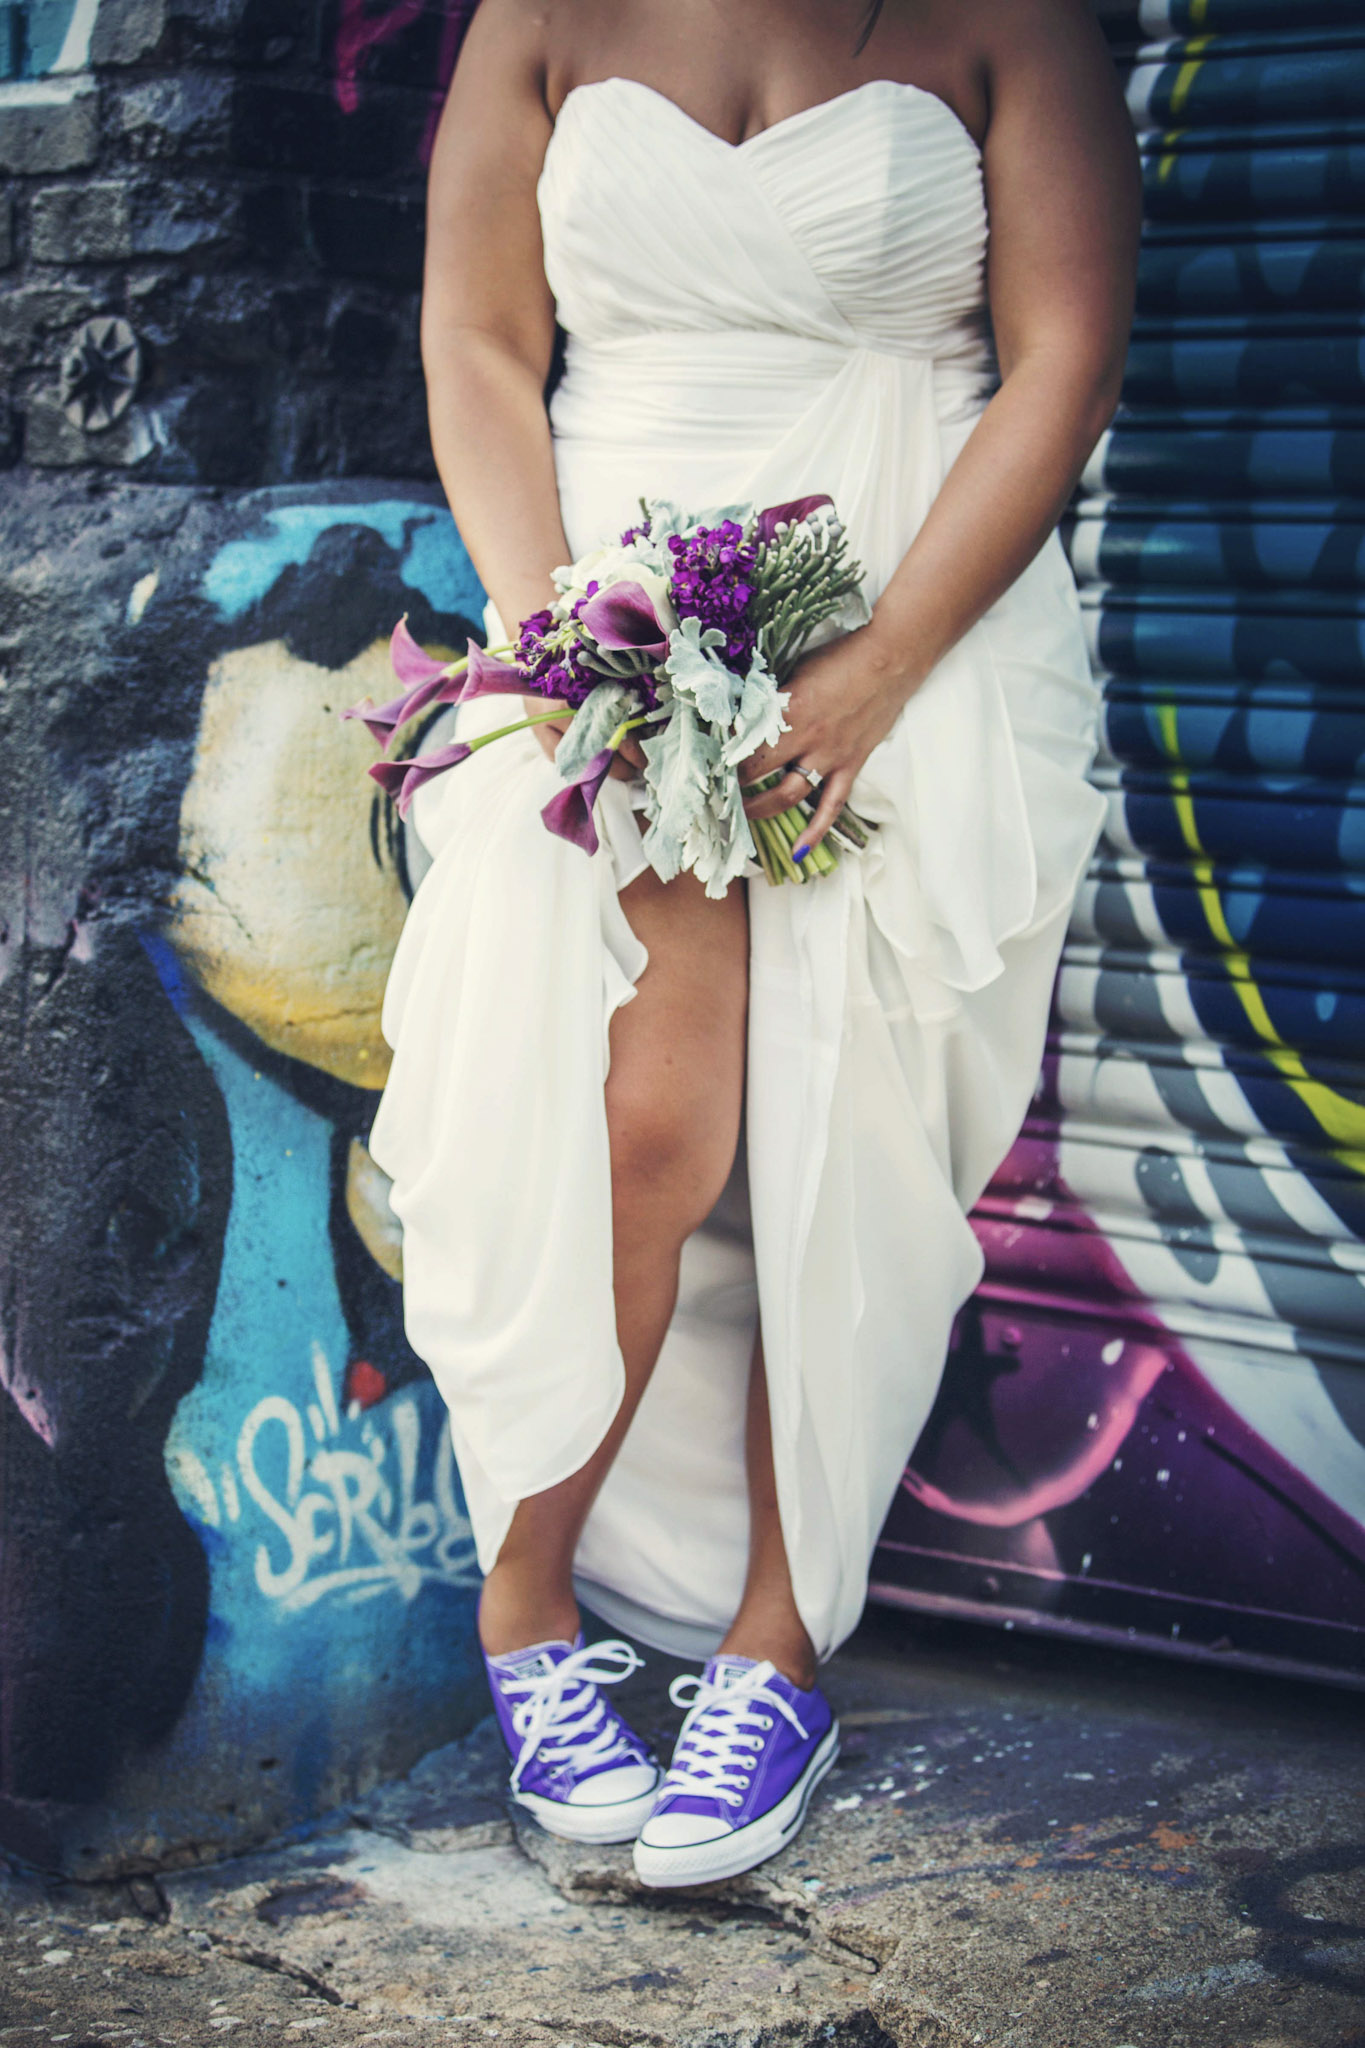 Kansas_City_Small_Wedding_Venue_Elope_Intimate_Ceremony_Budget_Affordable_Summer_Flowers_Constance & Carissa-292b.jpg